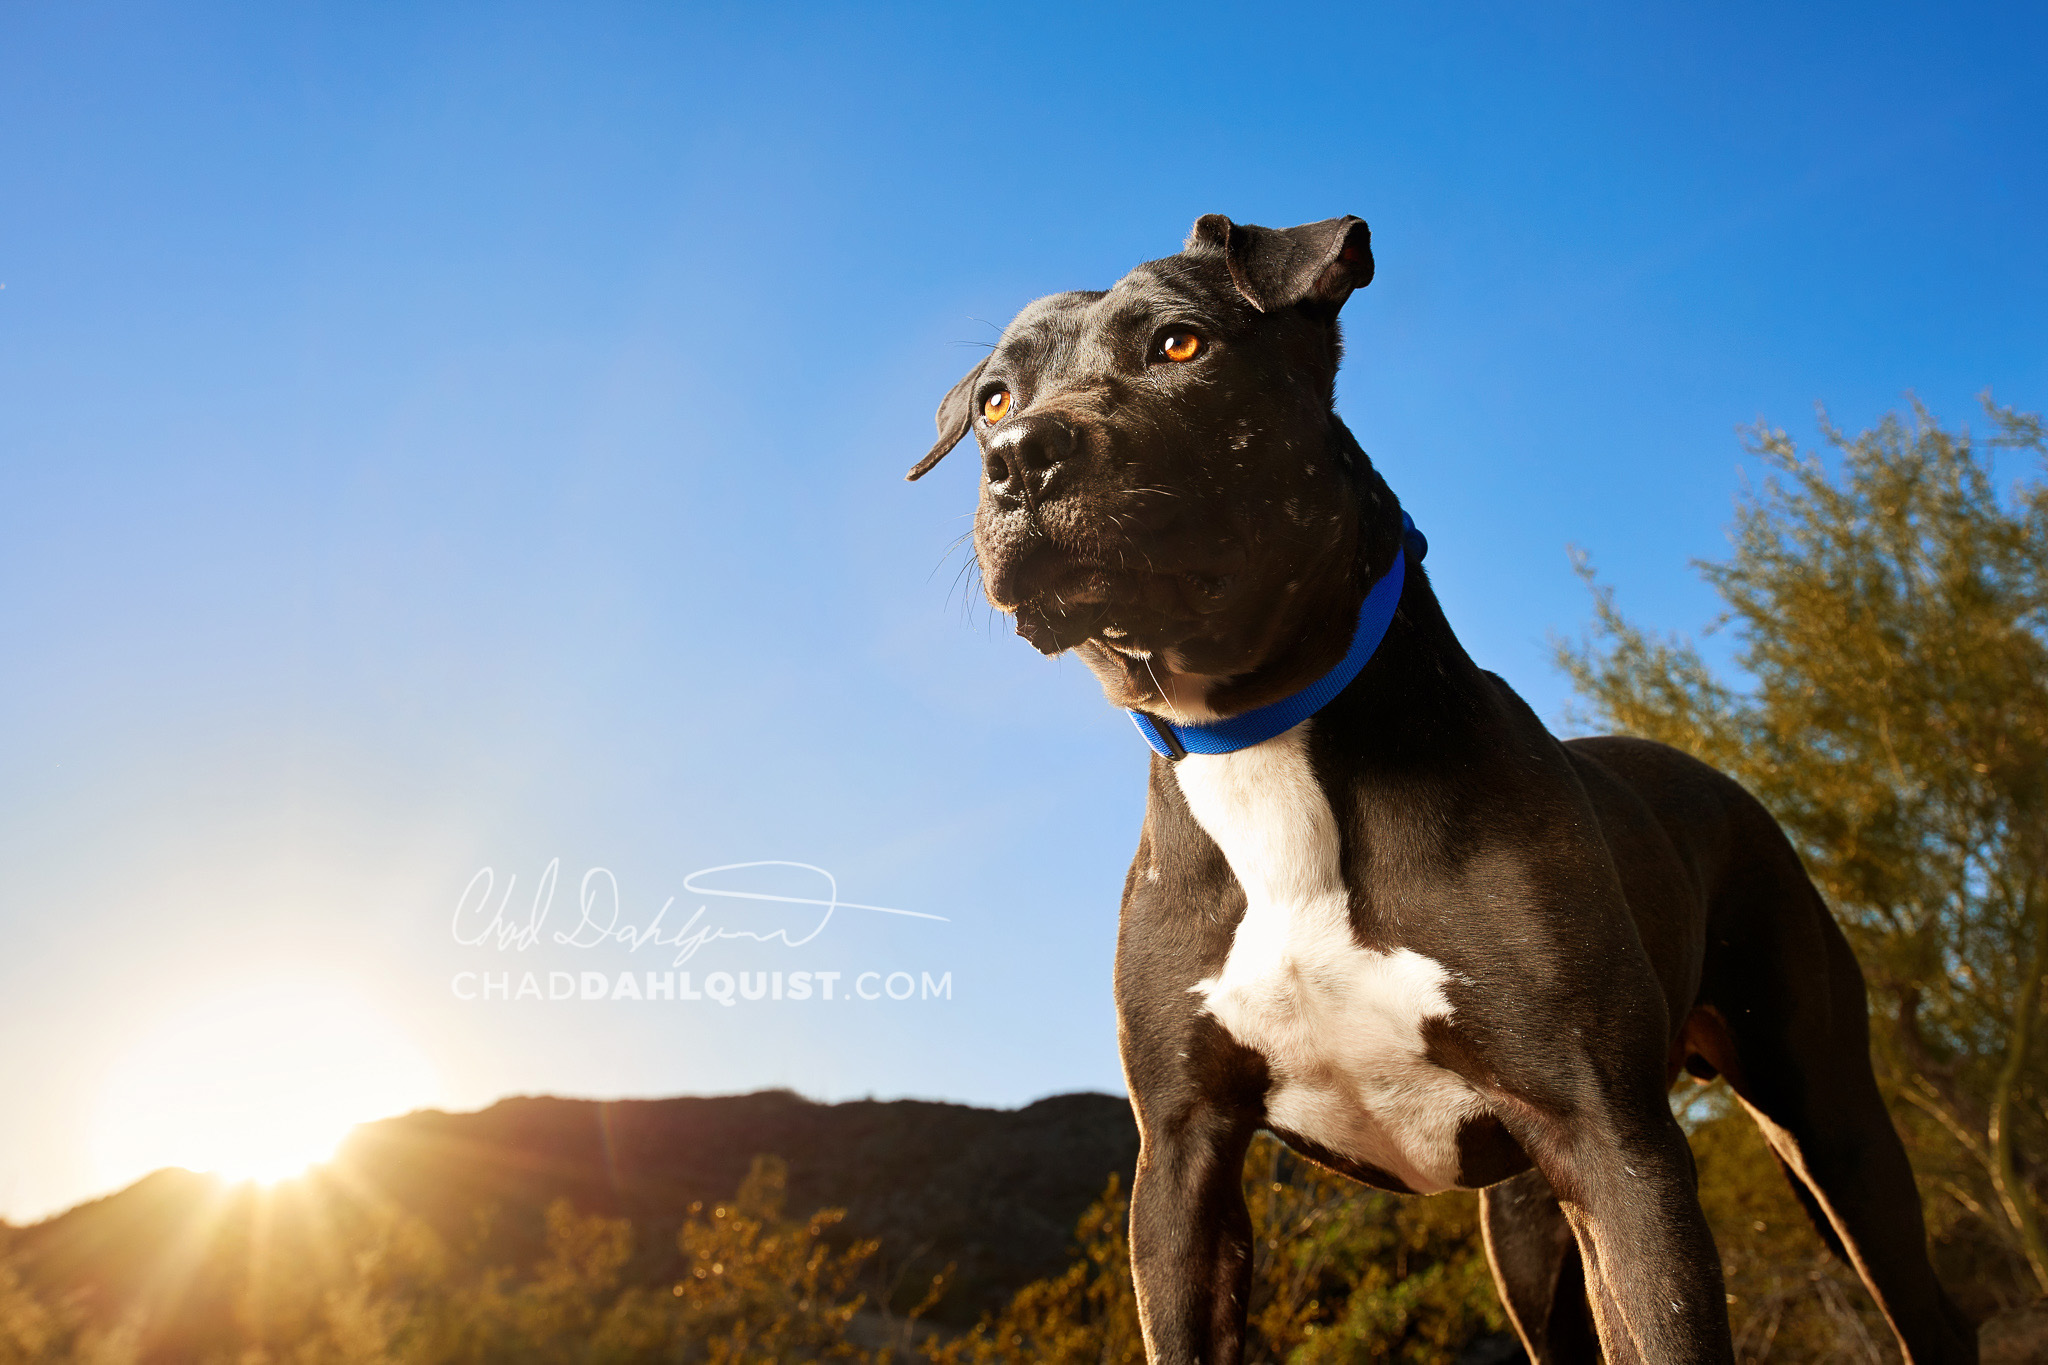 Chad Dahlquist Photography - Pets